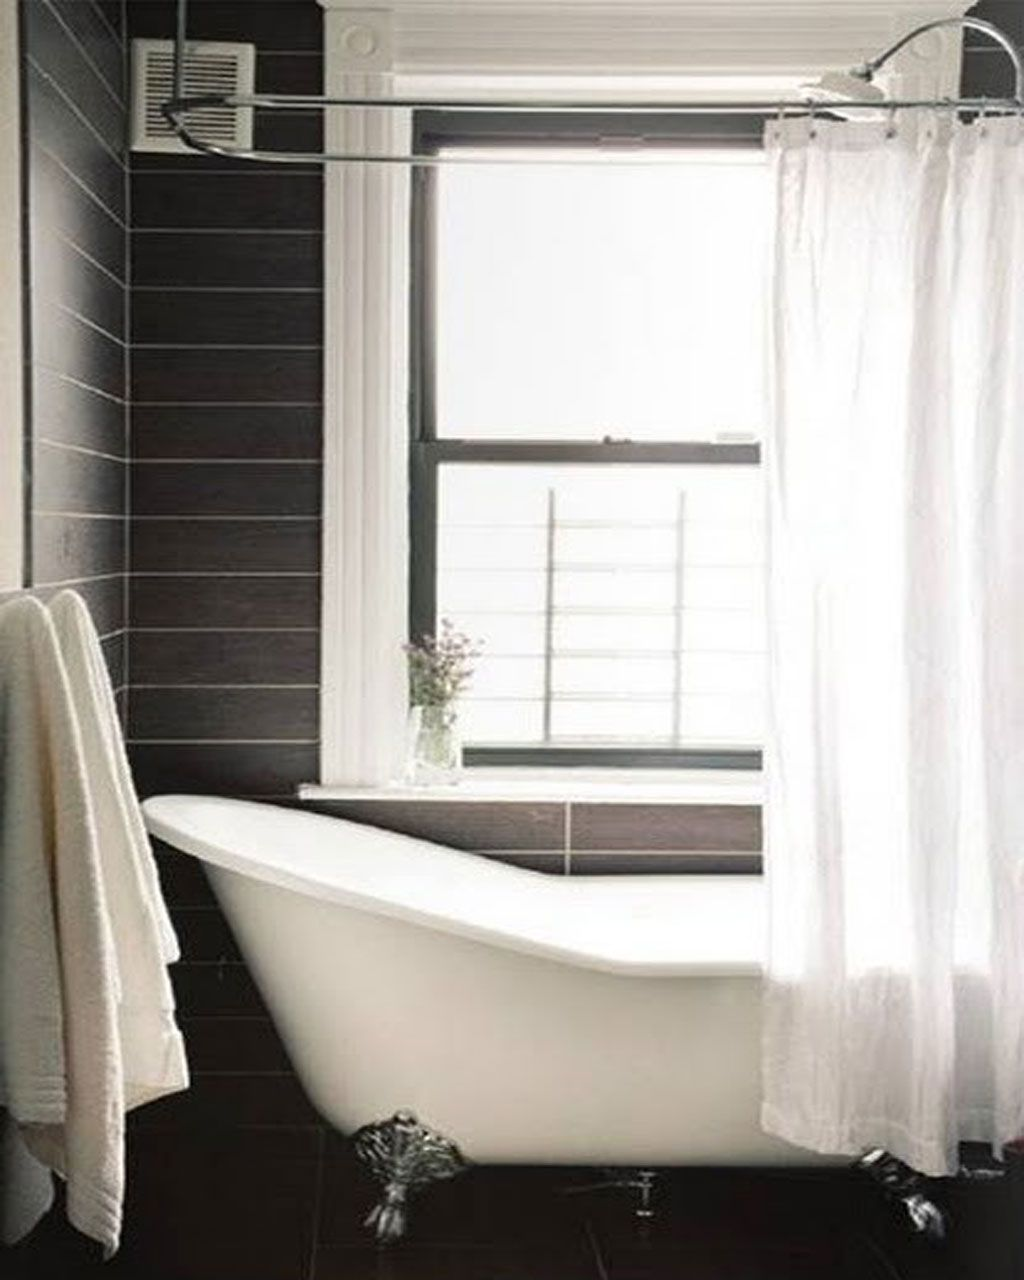 wooden bathroom your tub white prettify washbasin for ideas on enchanting curtain laminate table shower plus fabric with brown to round flooring of clawfoot grey oval